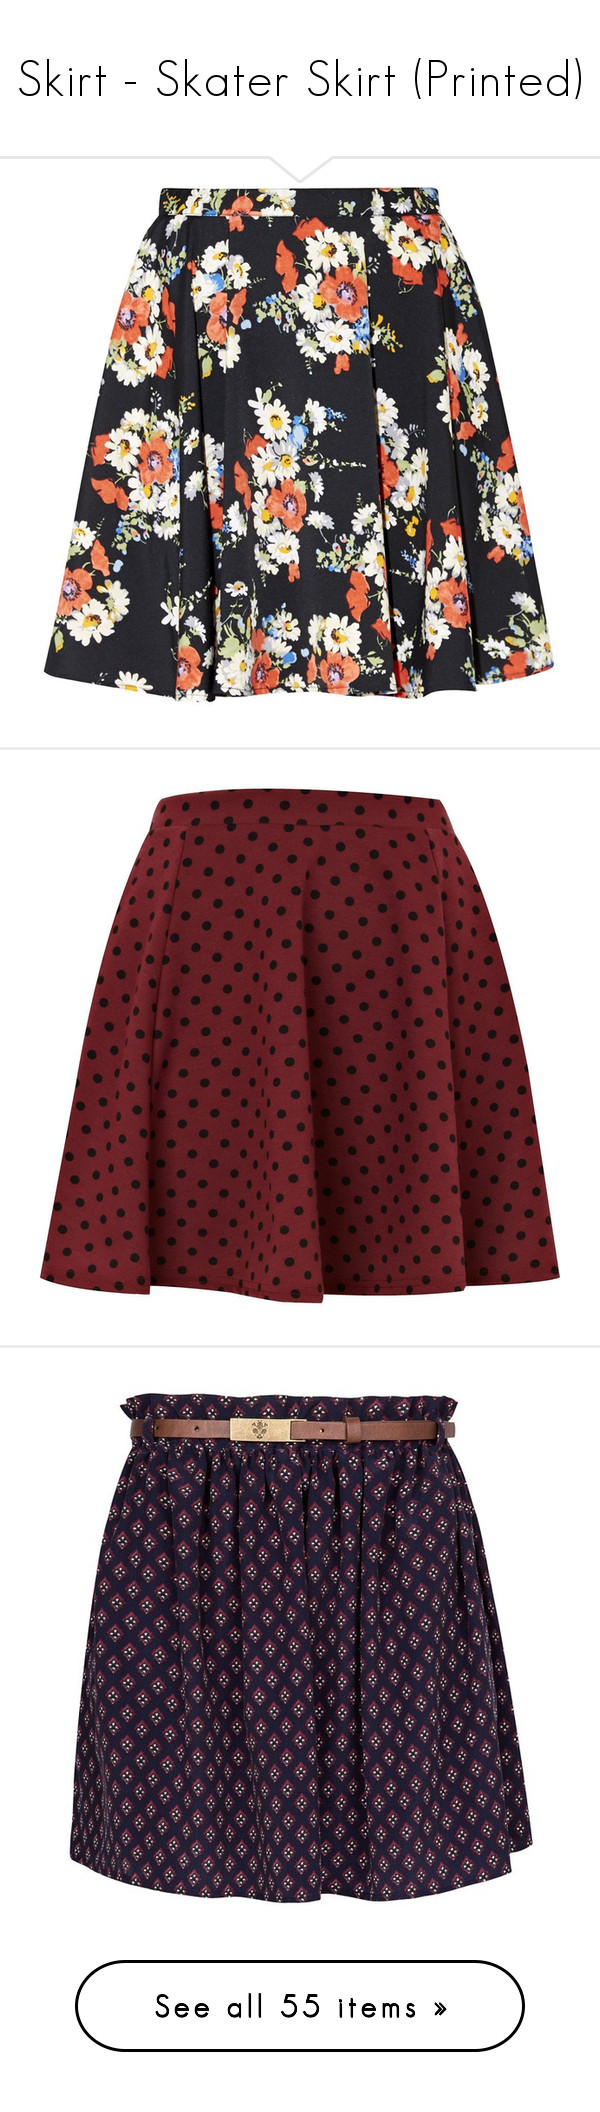 """""""Skirt - Skater Skirt (Printed)"""" by giovanna1995 ❤ liked on Polyvore featuring skirts, bottoms, petite, floral print skirt, floral printed skirt, floral print skater skirt, floral knee length skirt, crop skirt, saias and faldas"""